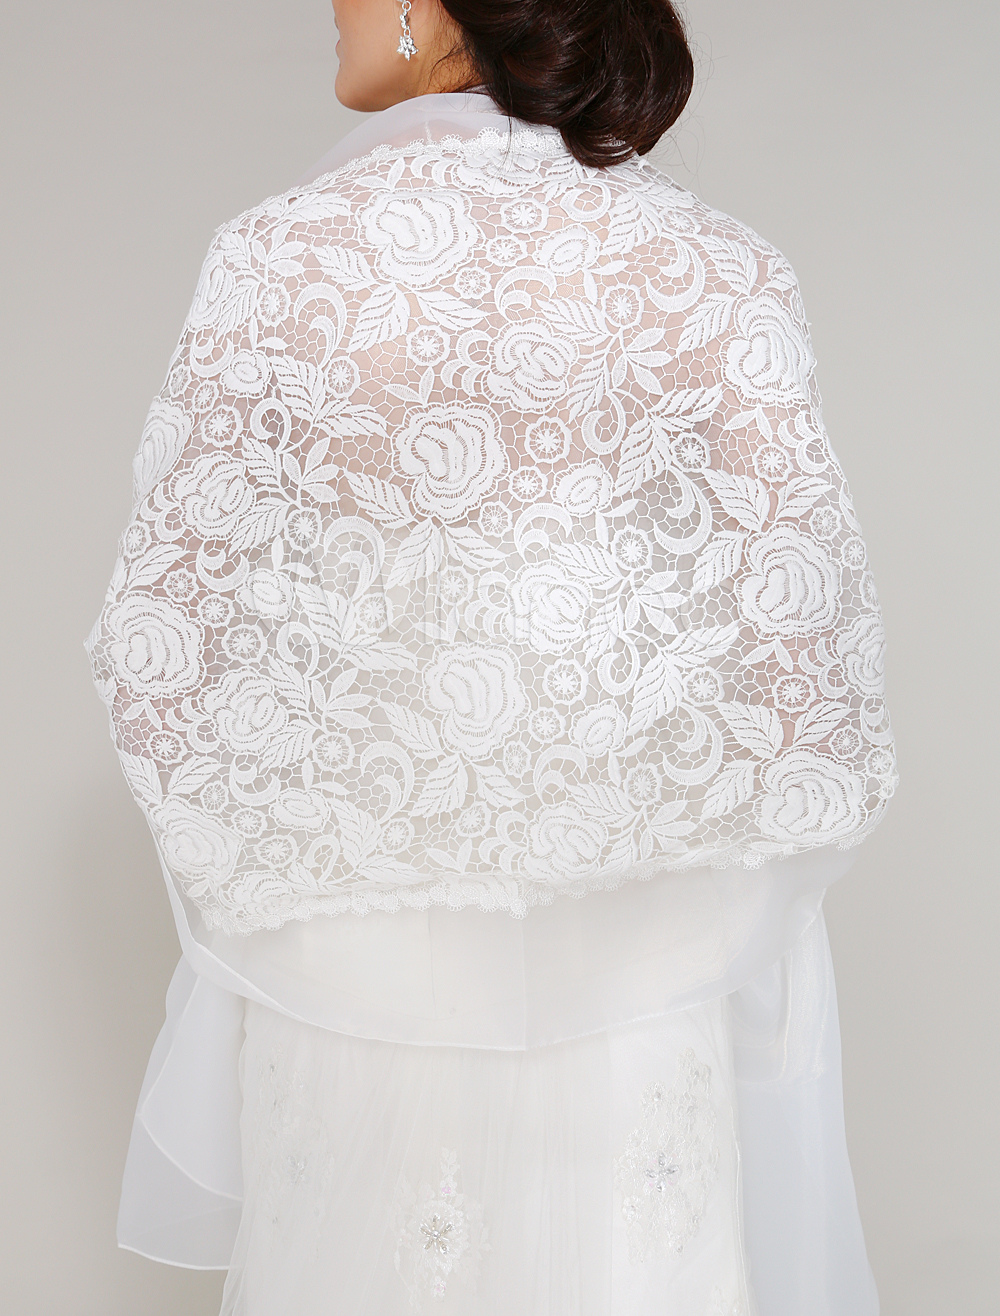 Ivory Tulle Wedding Shawl For Bride with Embroidered $34.99 AT vintagedancer.com